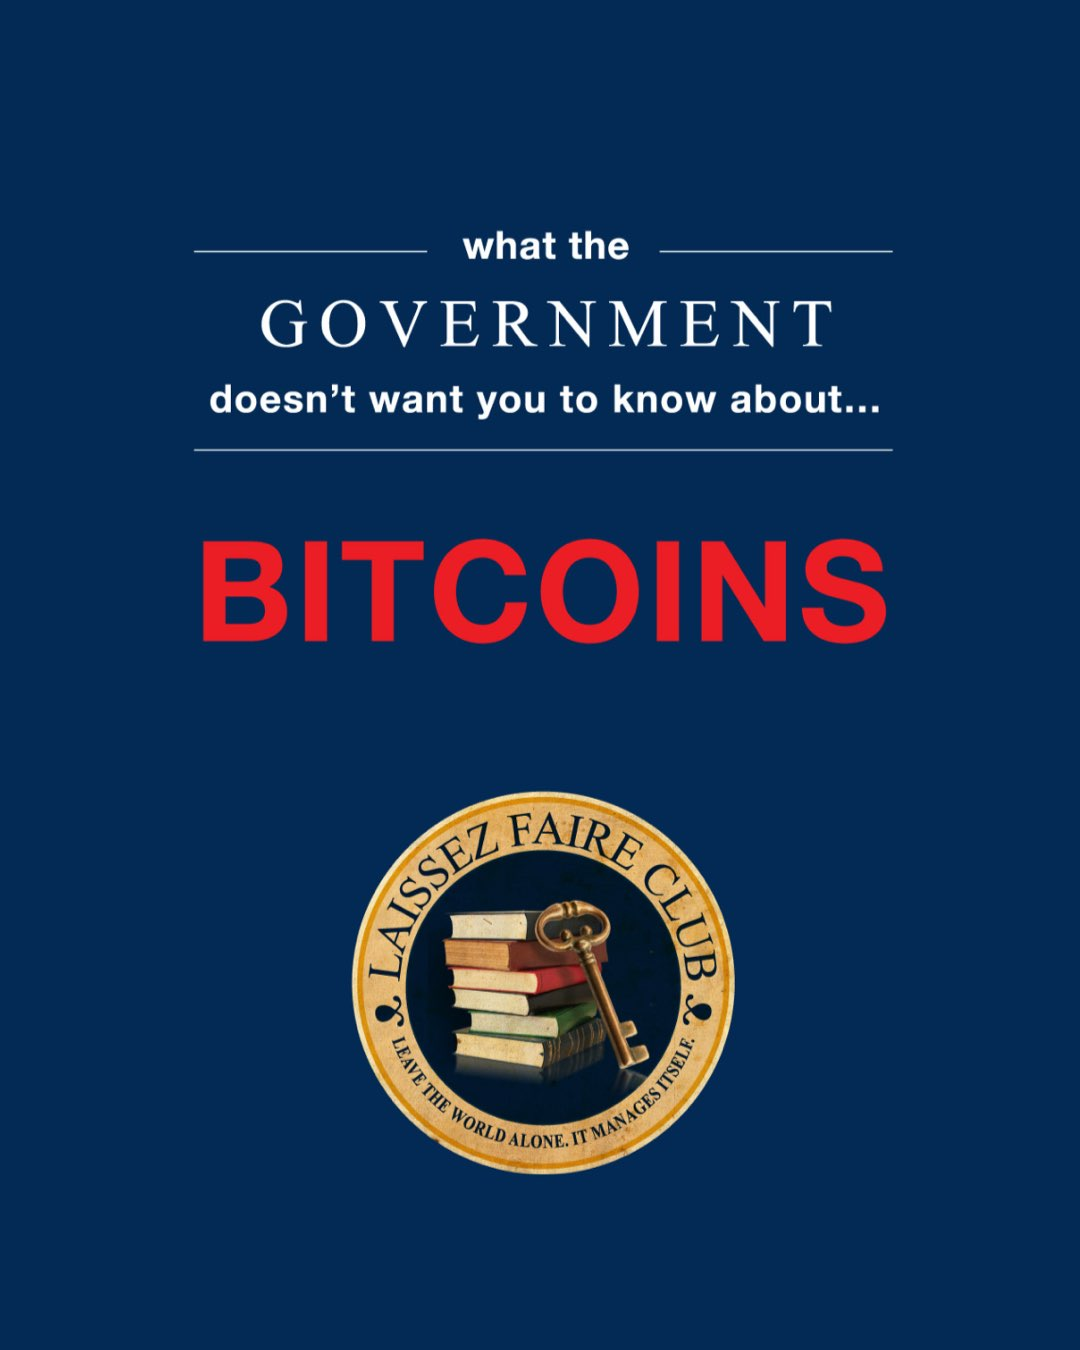 What the Government doesn't Want you to know about.. Bitcoins